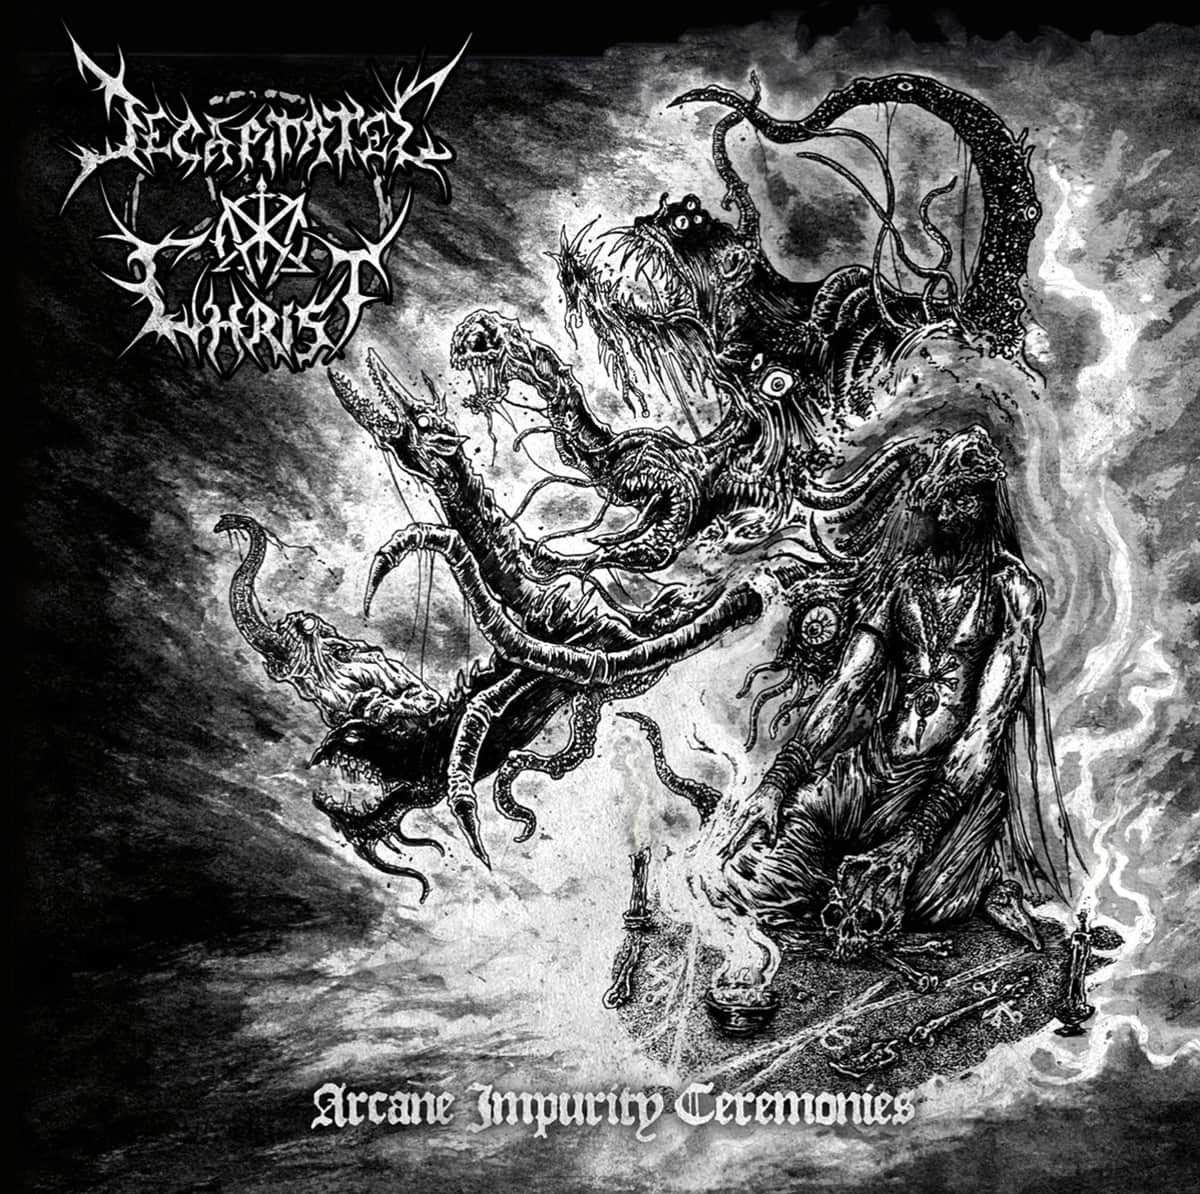 DECAPITATED CHRIST – Arcane impurity ceremonies, 2014